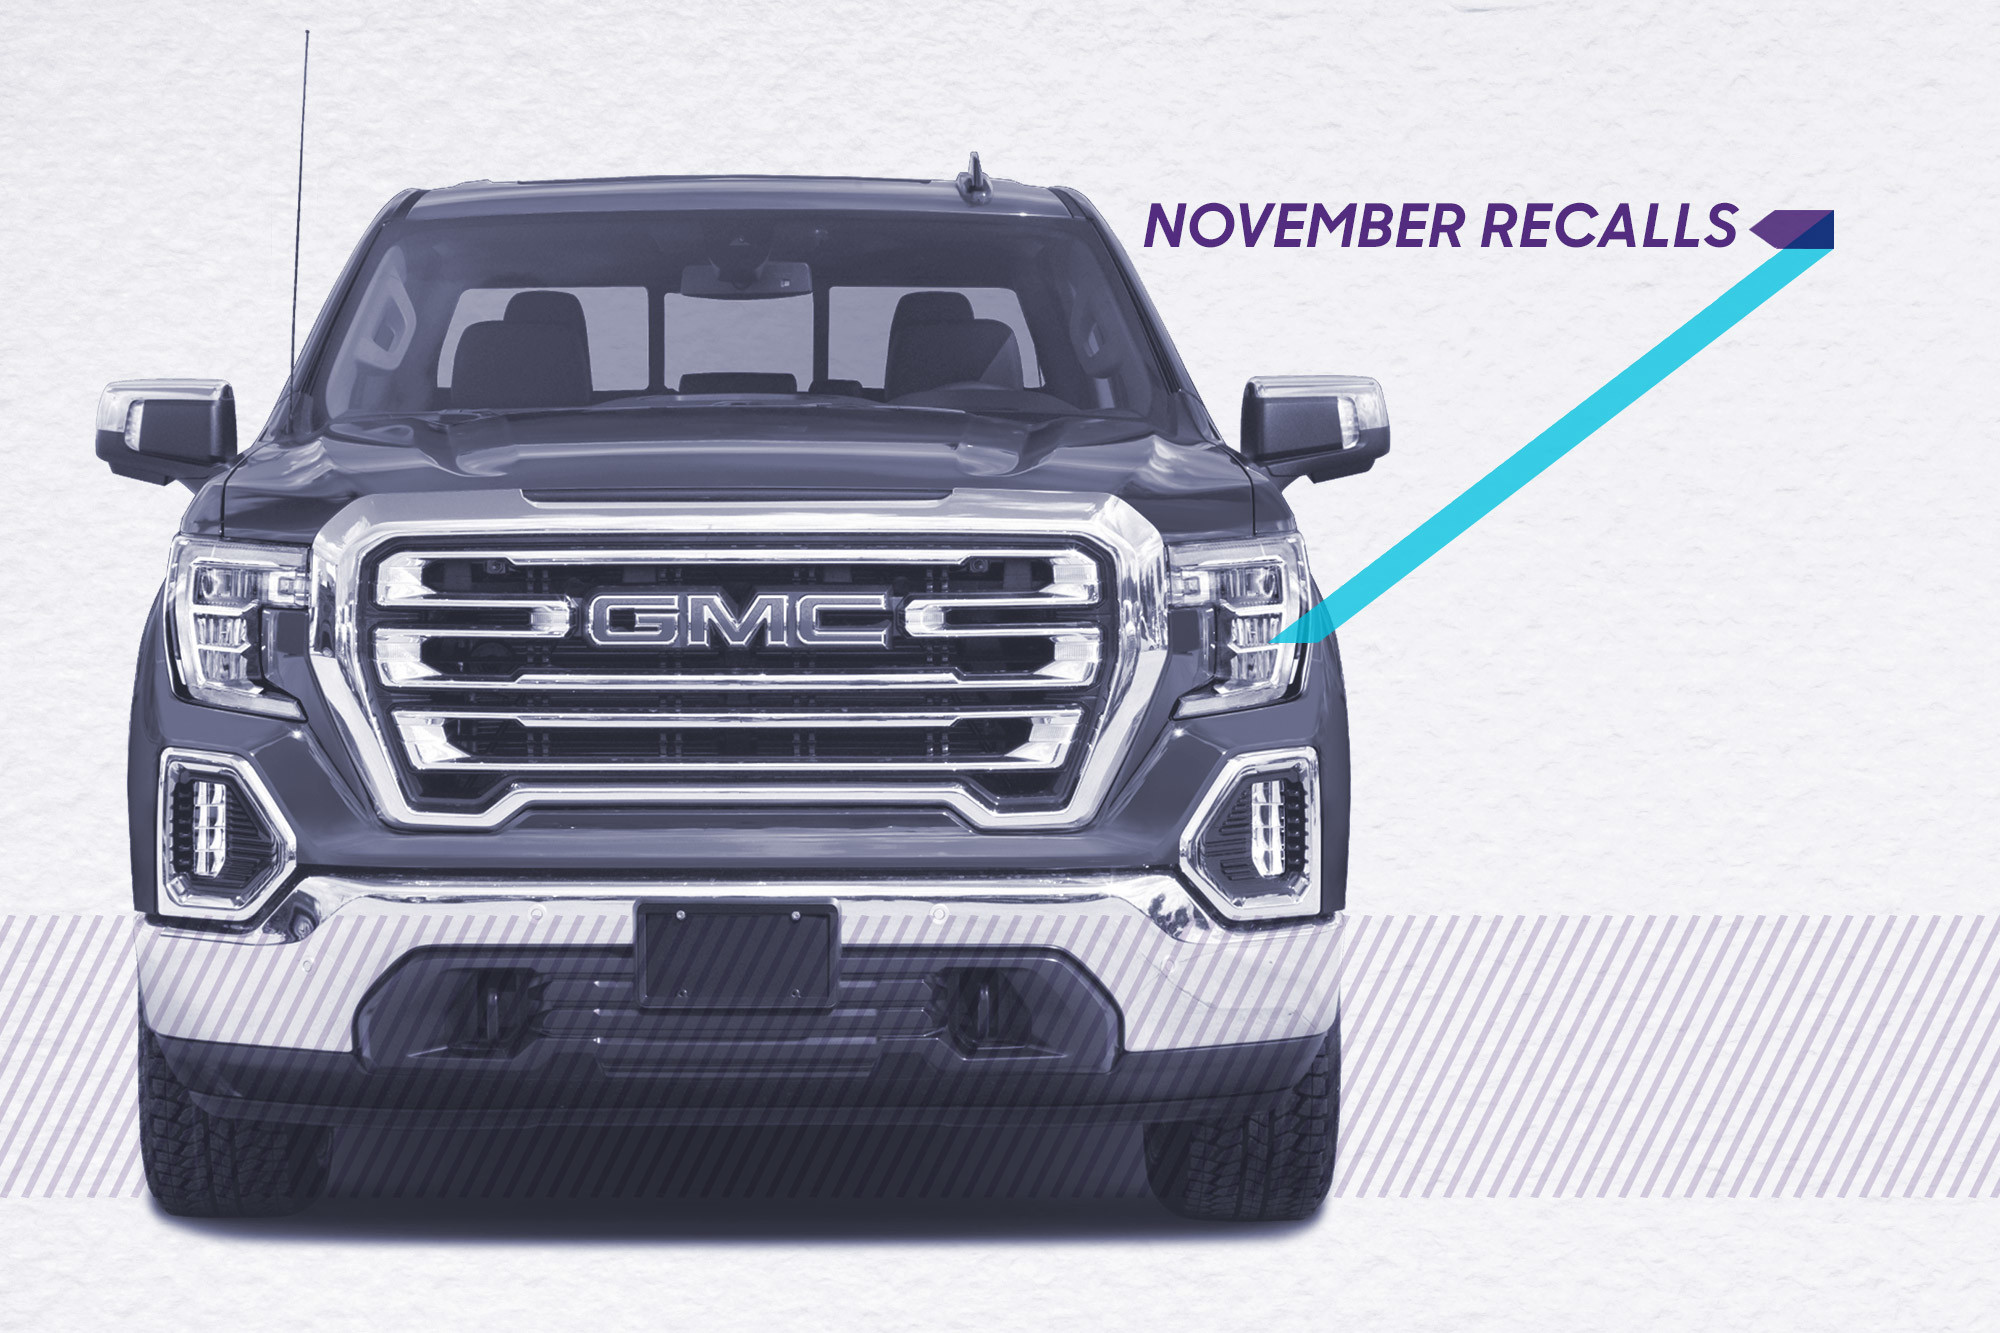 Recall Recap: The 5 Biggest Recalls in November 2019